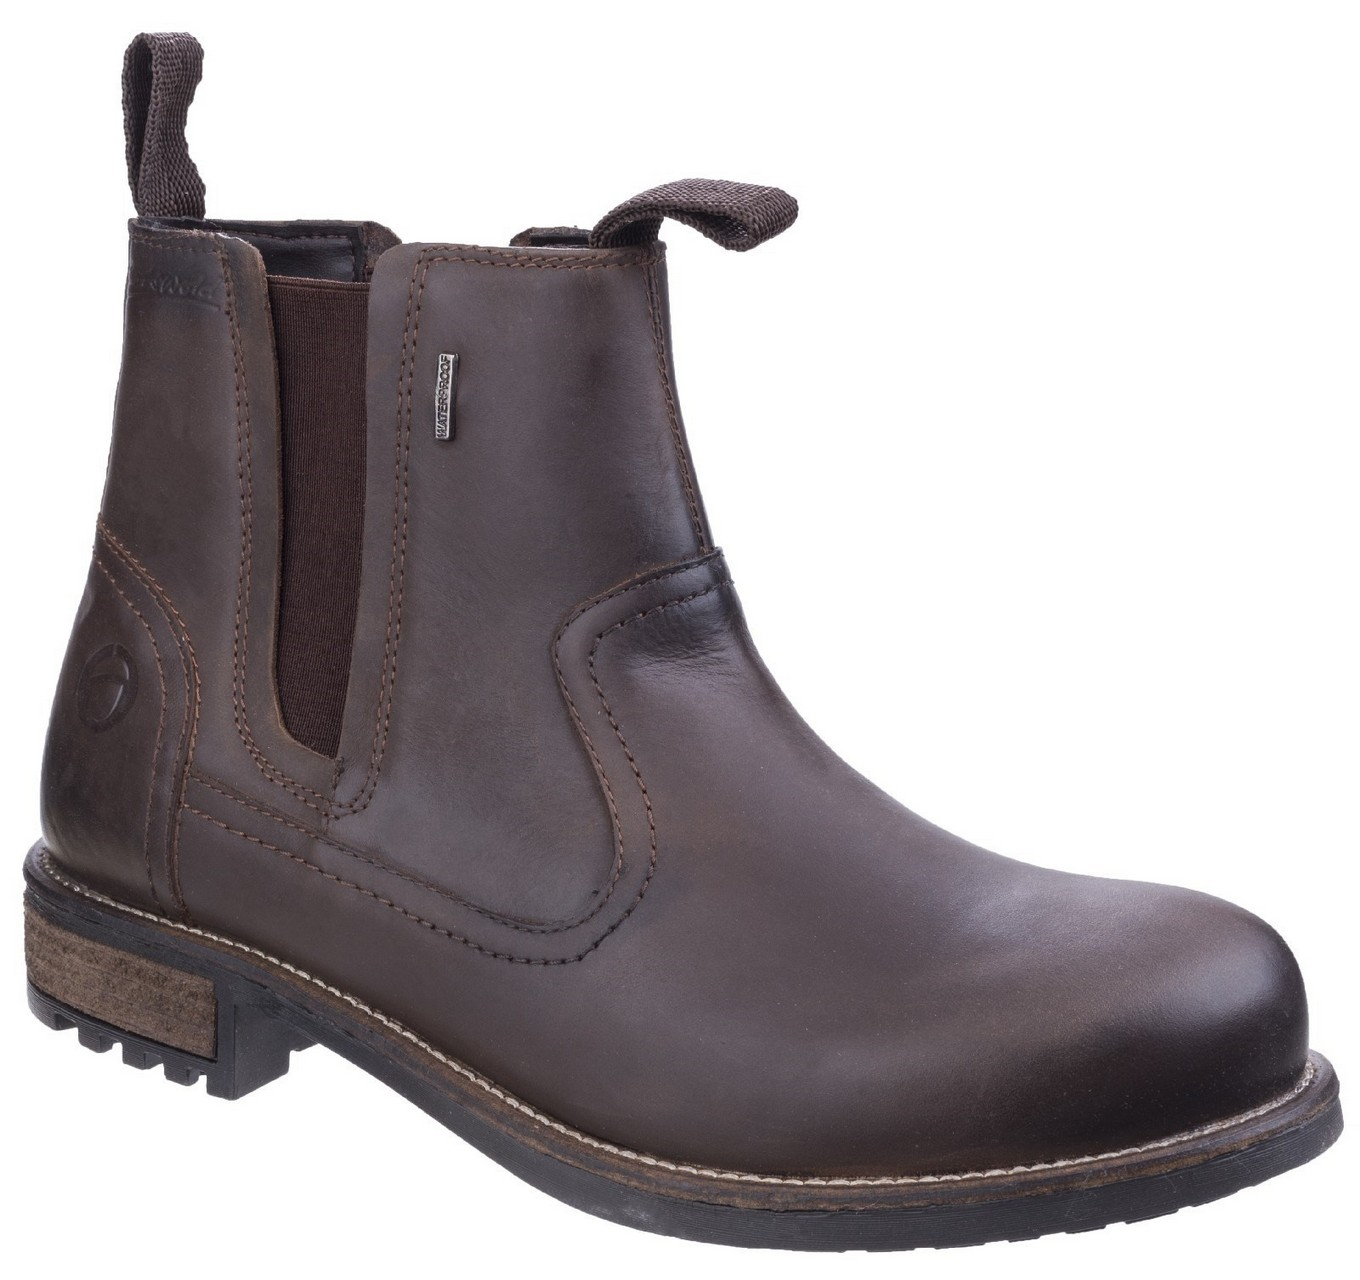 Worcester Boots Brown 10